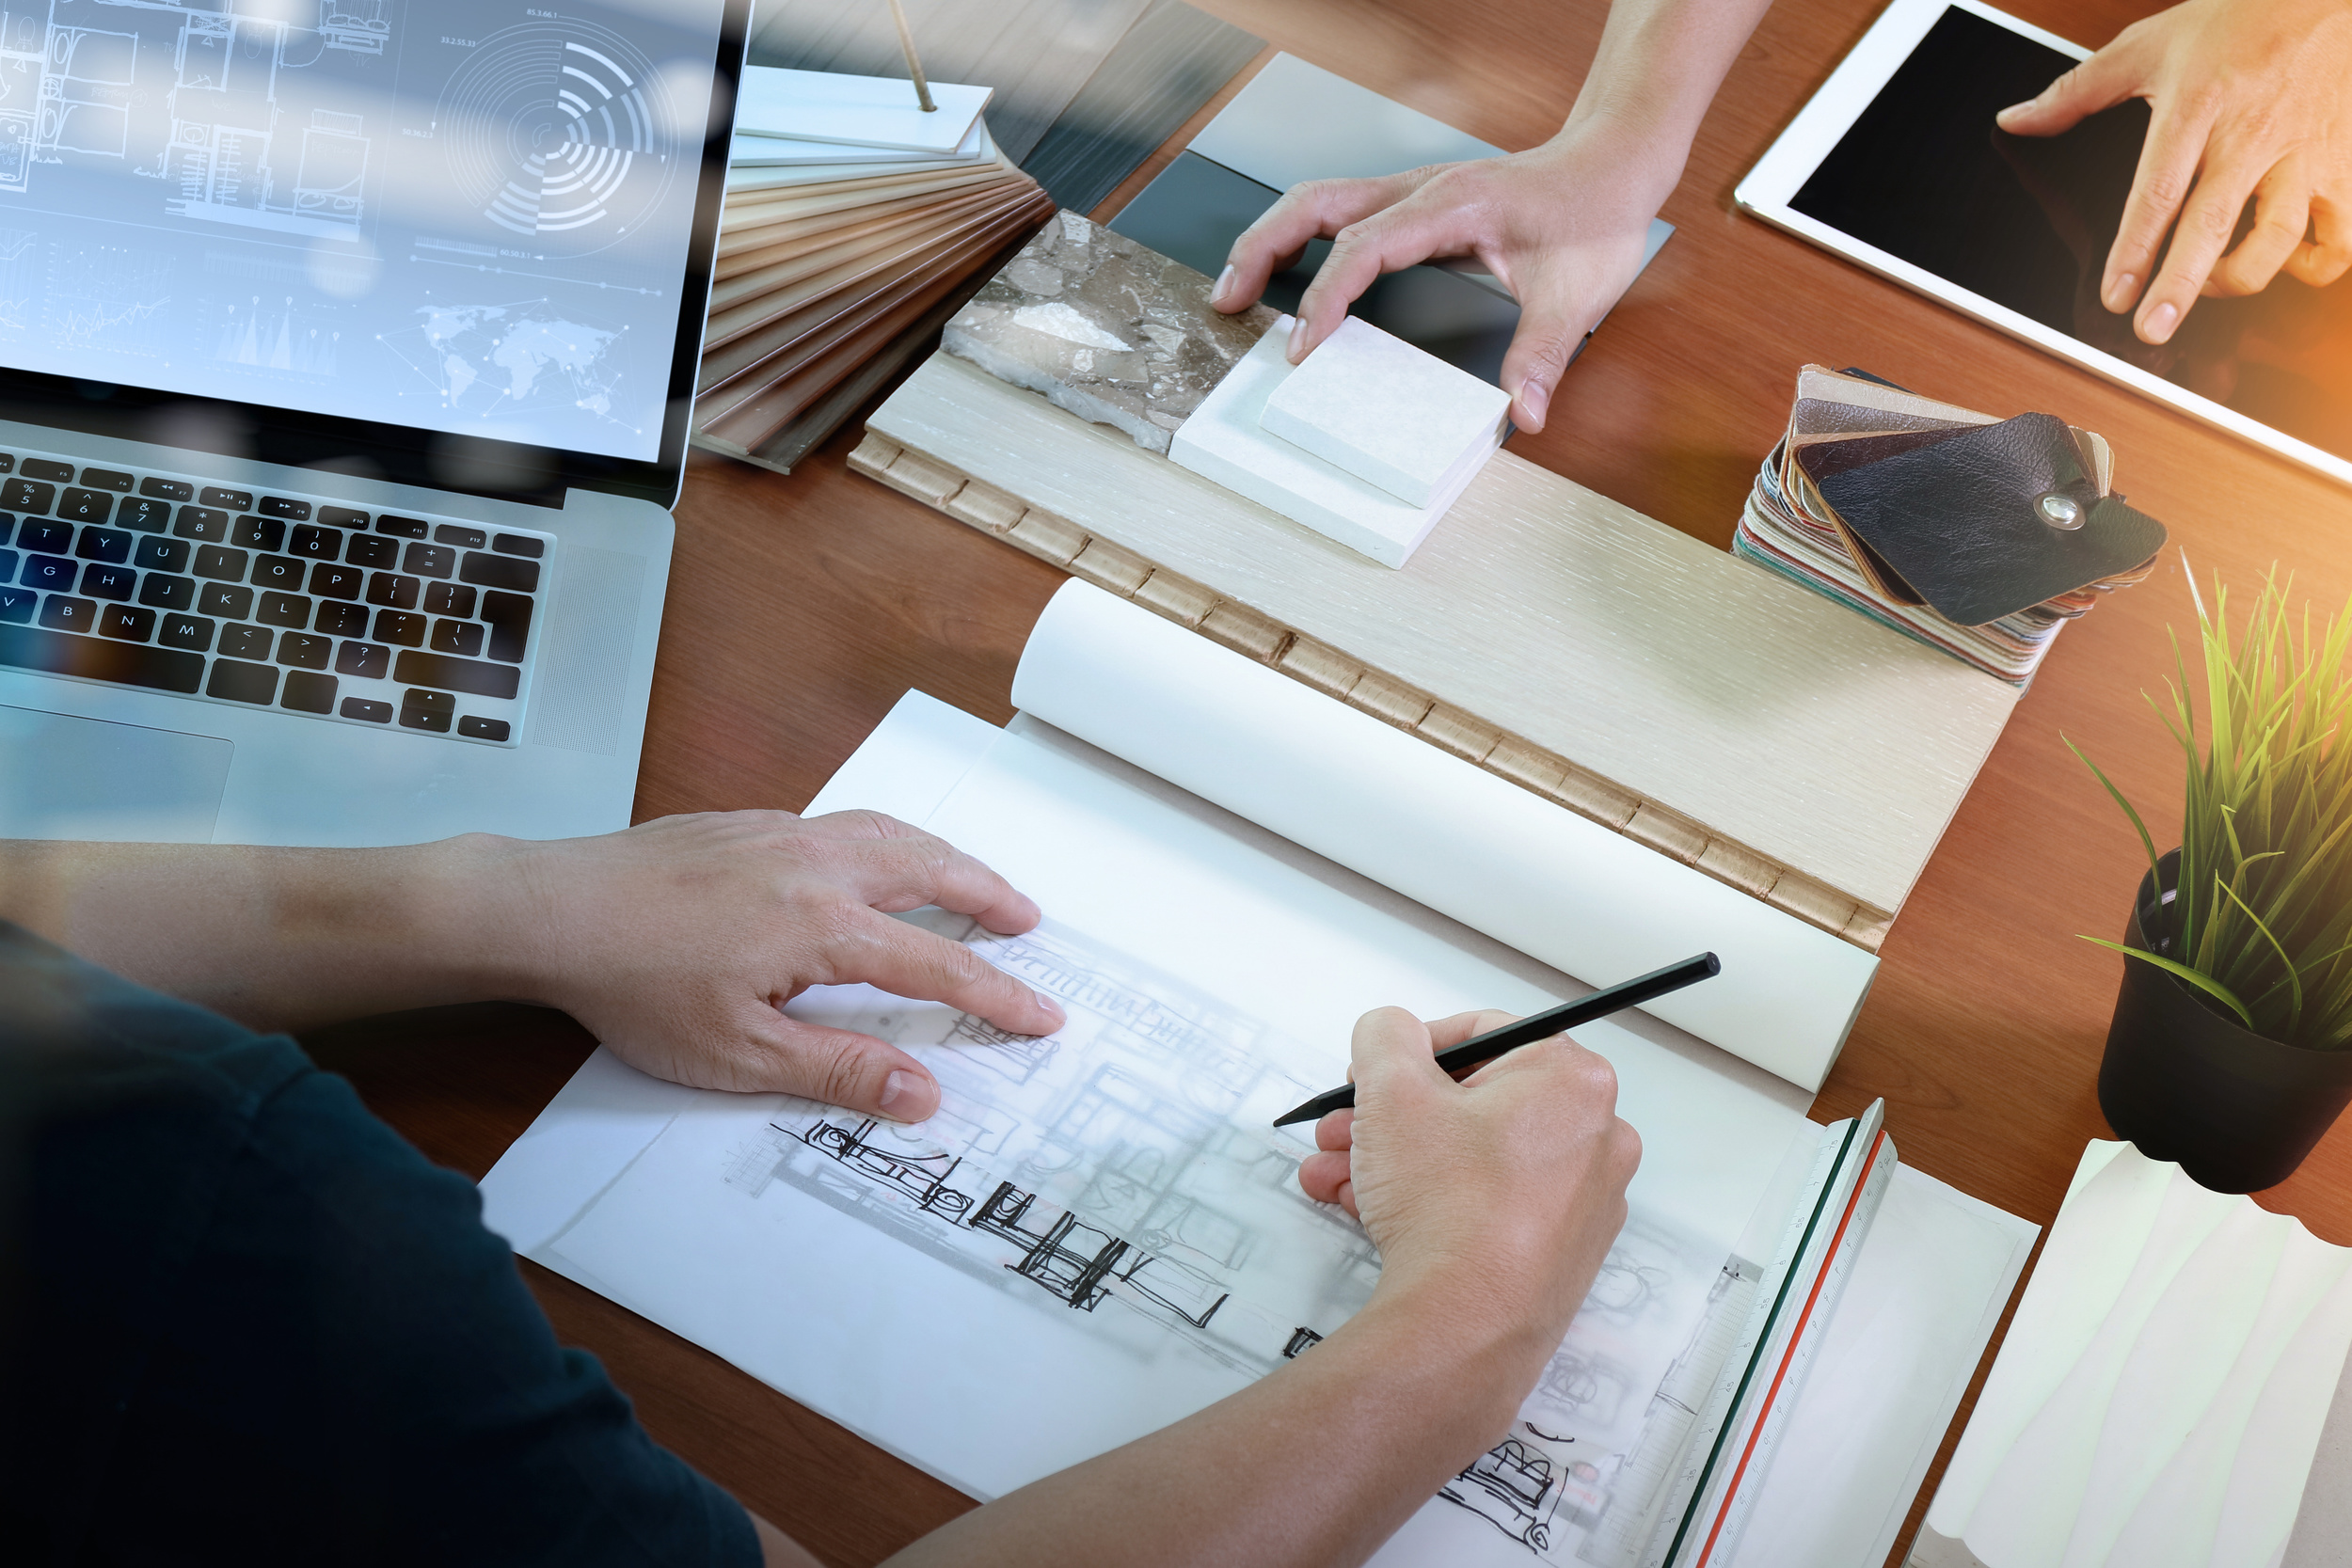 designer working at her desk with sketches